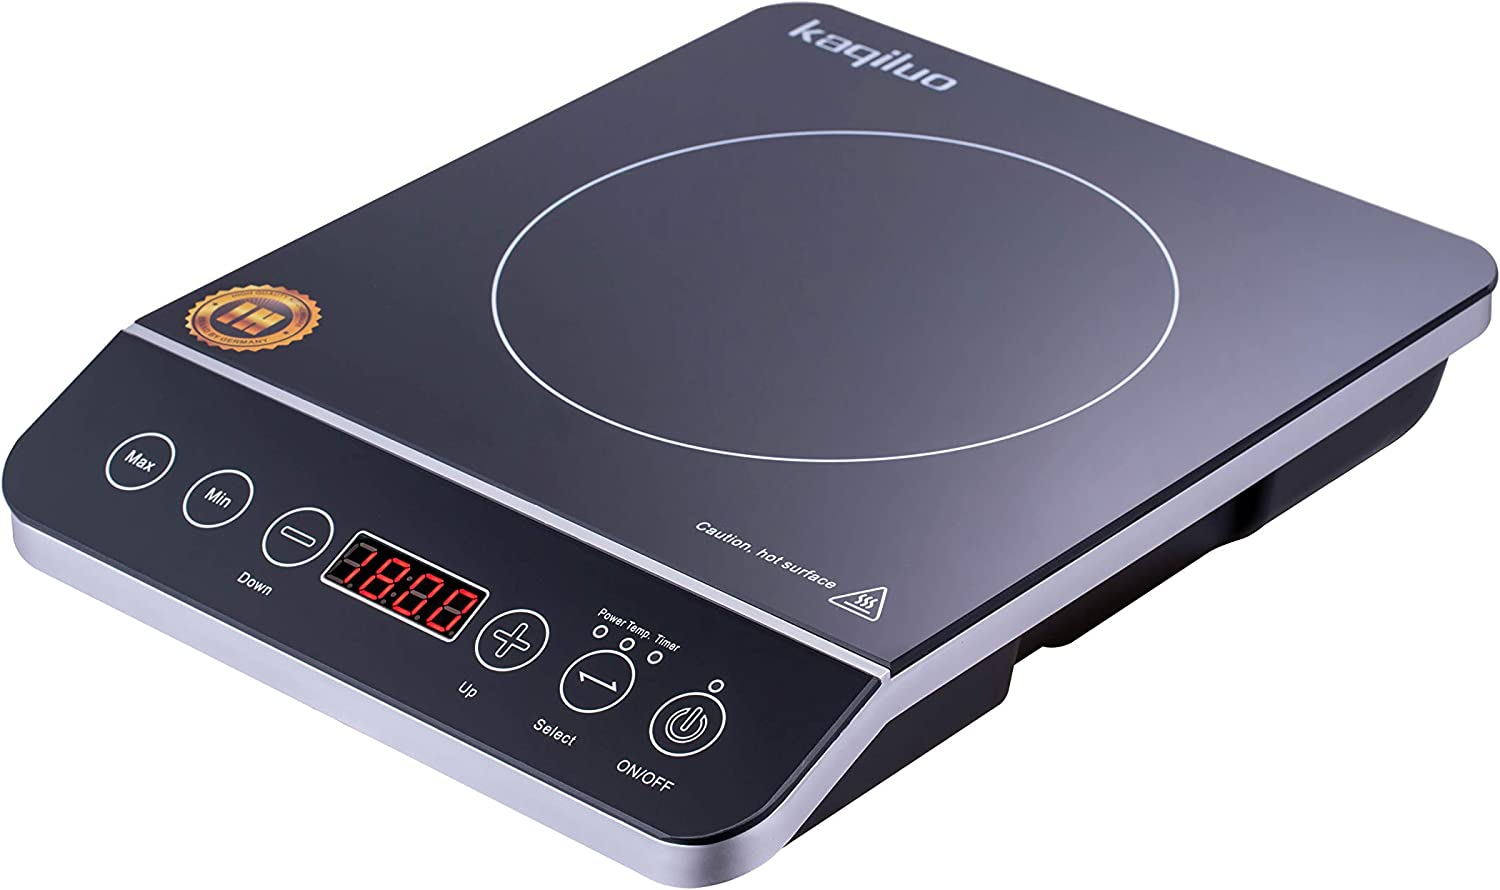 Kaqiluo Portable 1800W Max Touch Induction Cooker, With Multiple Power Settings And Temperature Settings, 3-Hour Timer Burner